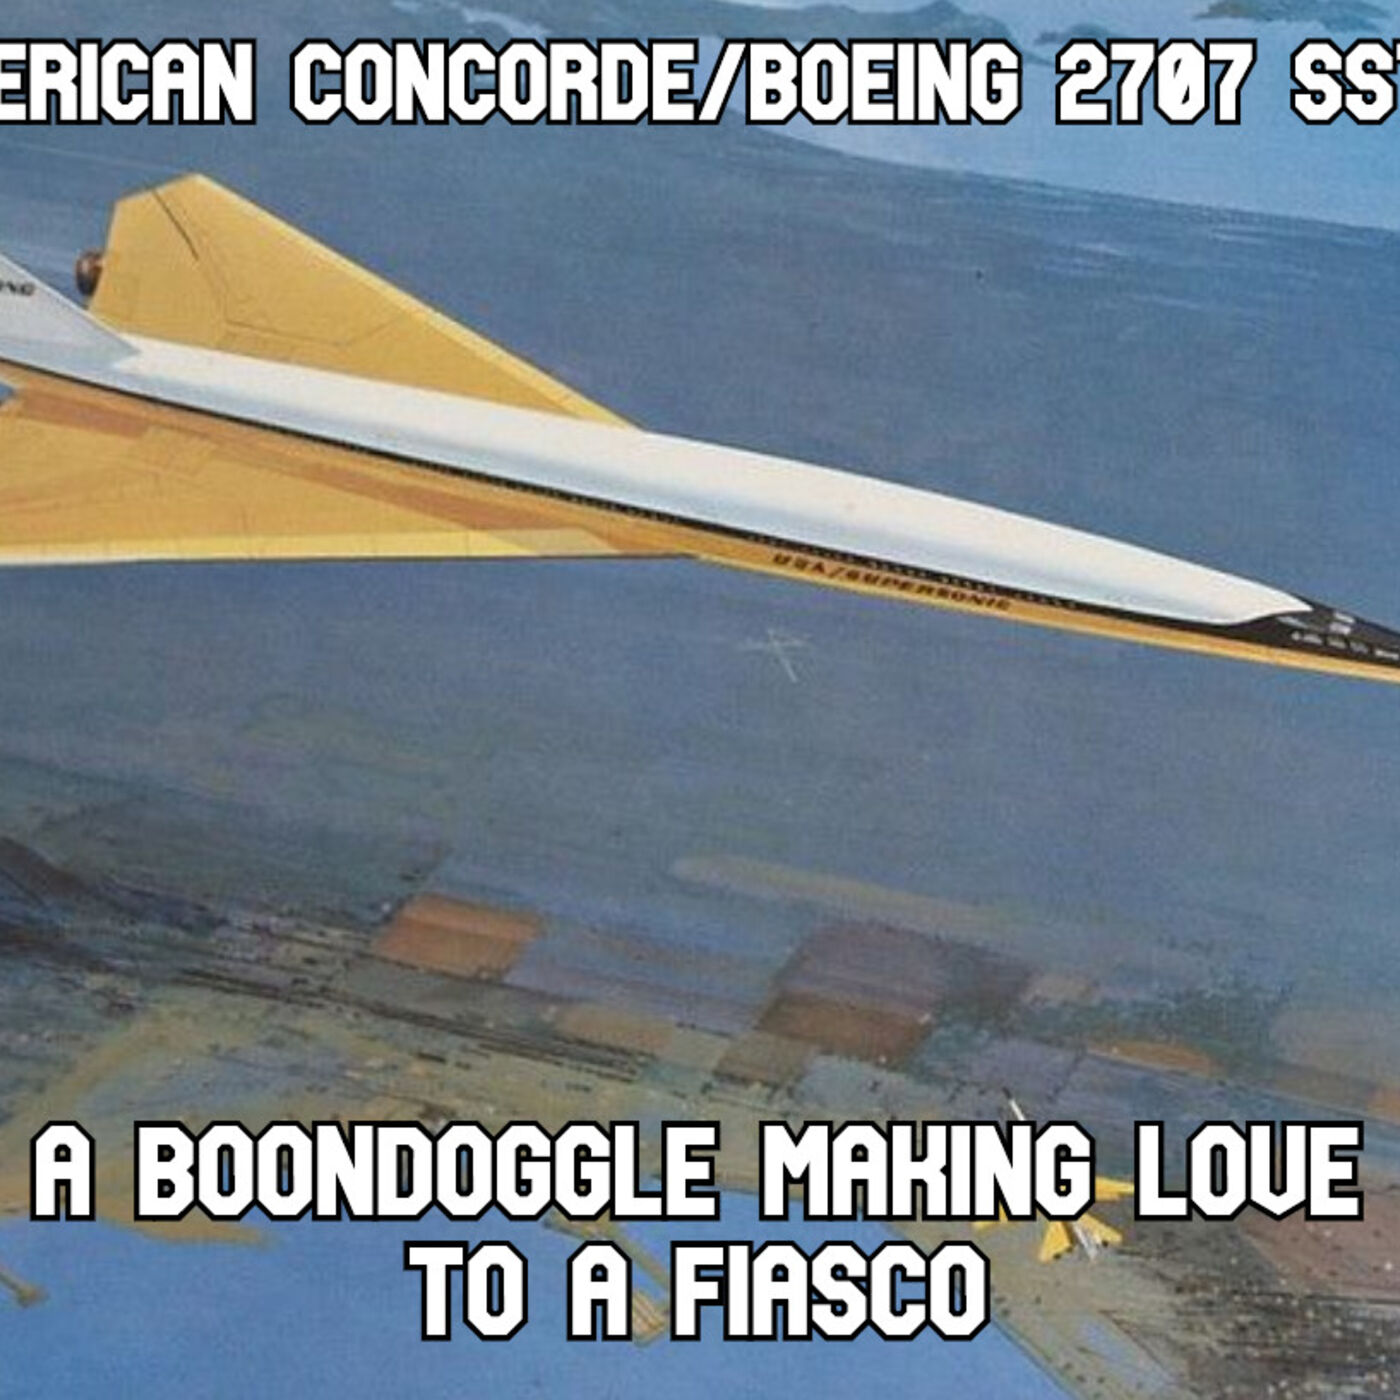 The American Concorde (SST Boeing 2707): A Boondoggle Making Love to a Fiasco